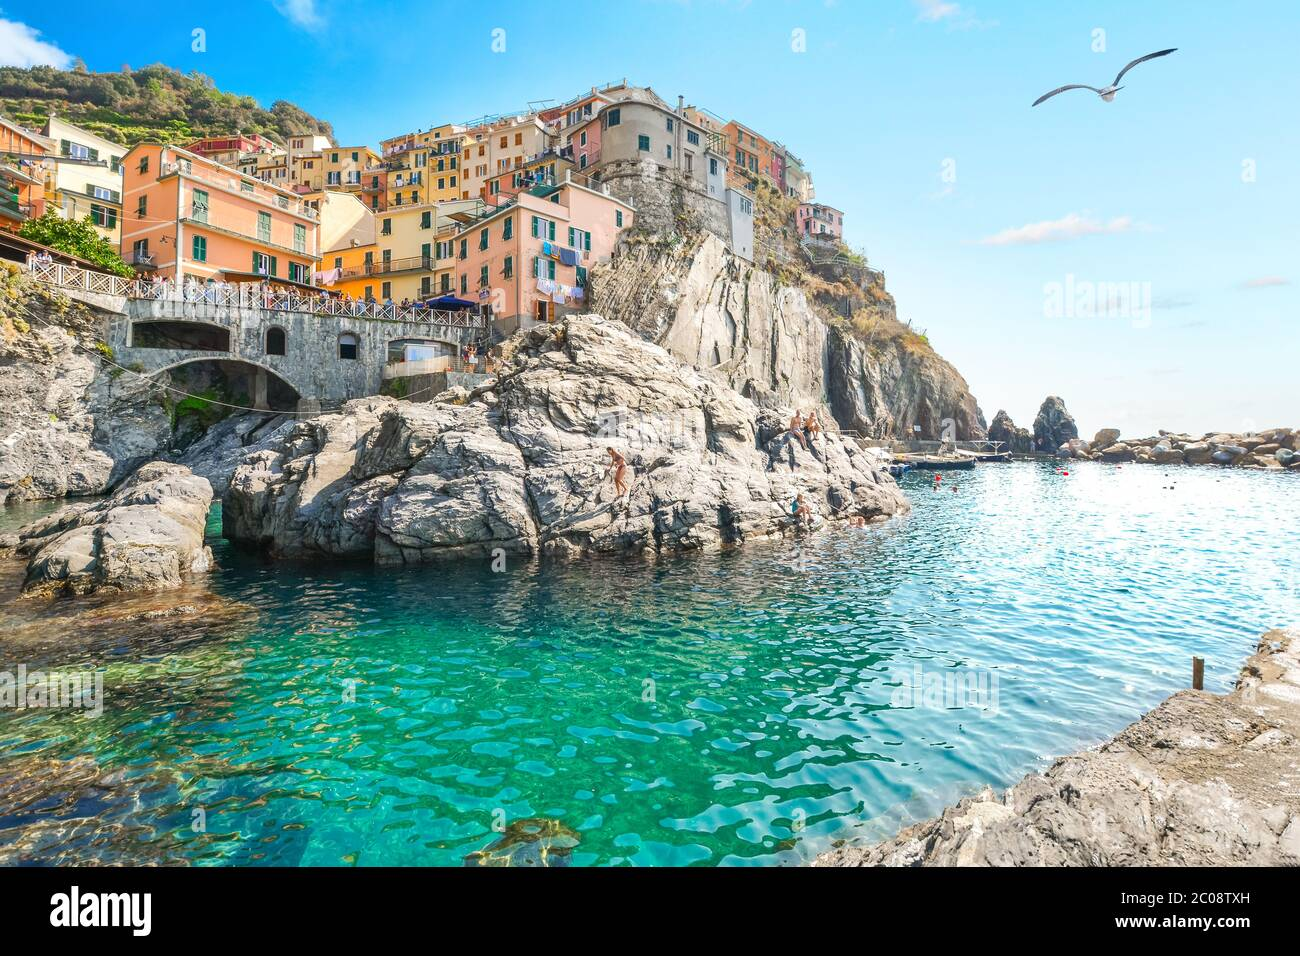 The turquoise bay and swimming area at the village of Manarola, one of the five villaged of the Cinque Terre, a World Heritage Site. Stock Photo